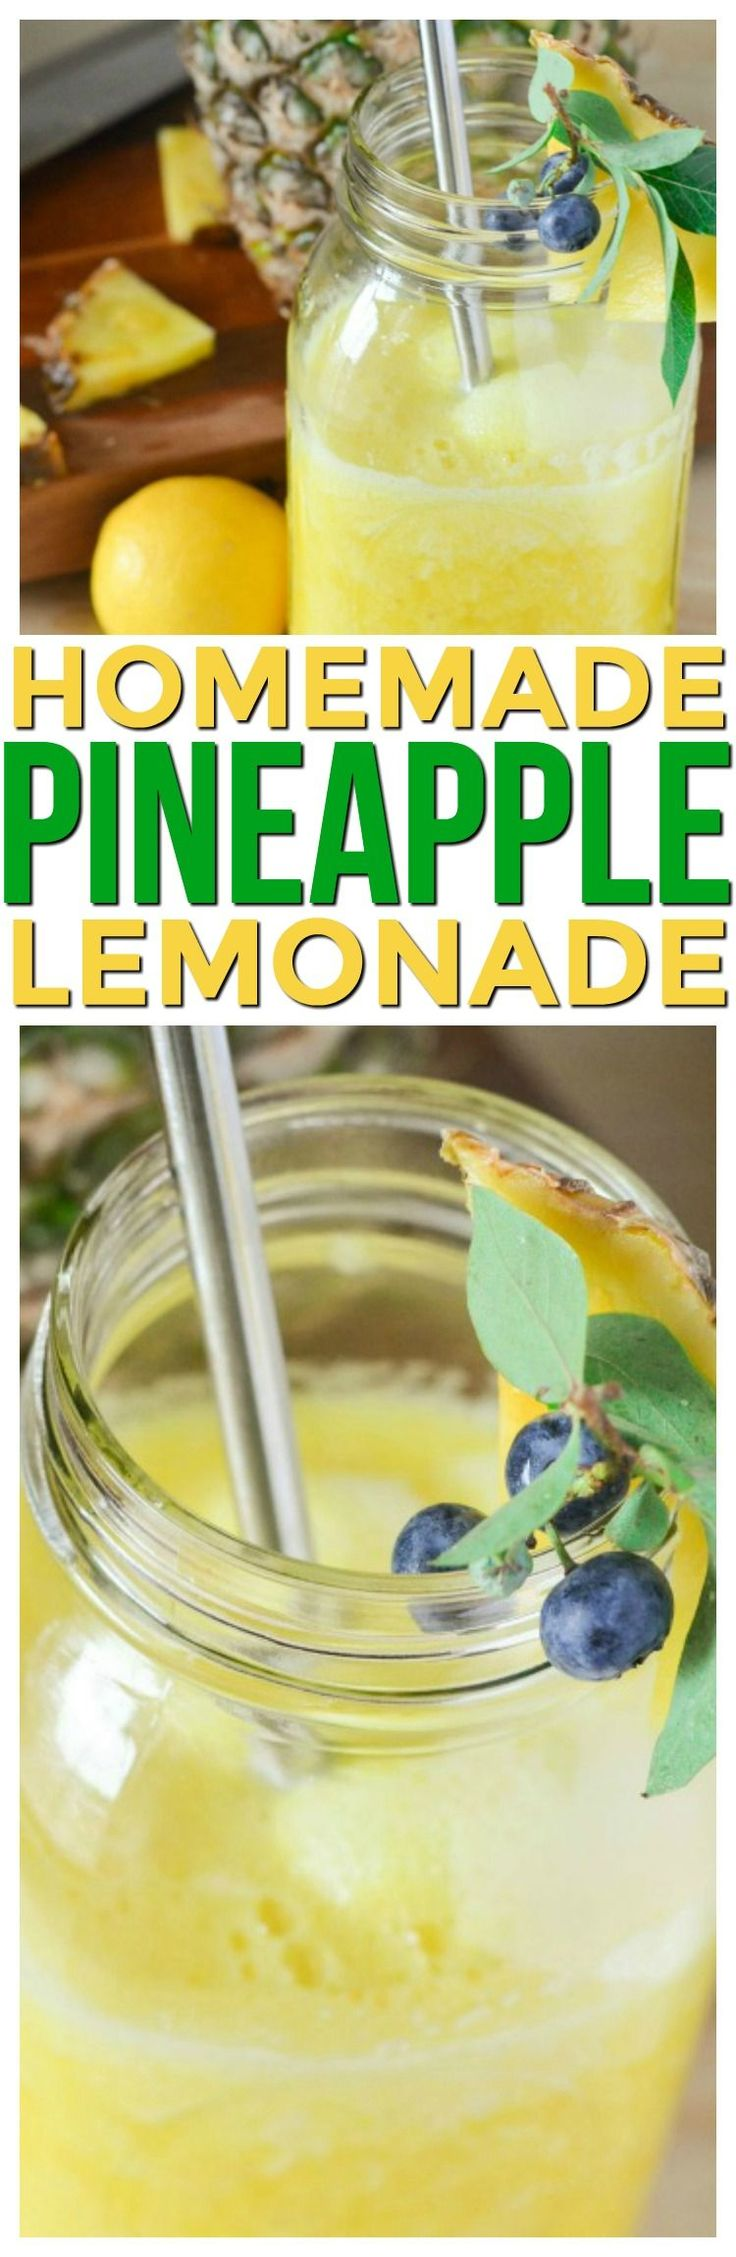 This frosty Pineapple Lemonade Recipe Homemade is perfection! Make it if you need a refreshing drink or homemade drink recipes nonalcoholic for kids it's a healthy summer beverage.  via @KnowYourProduce